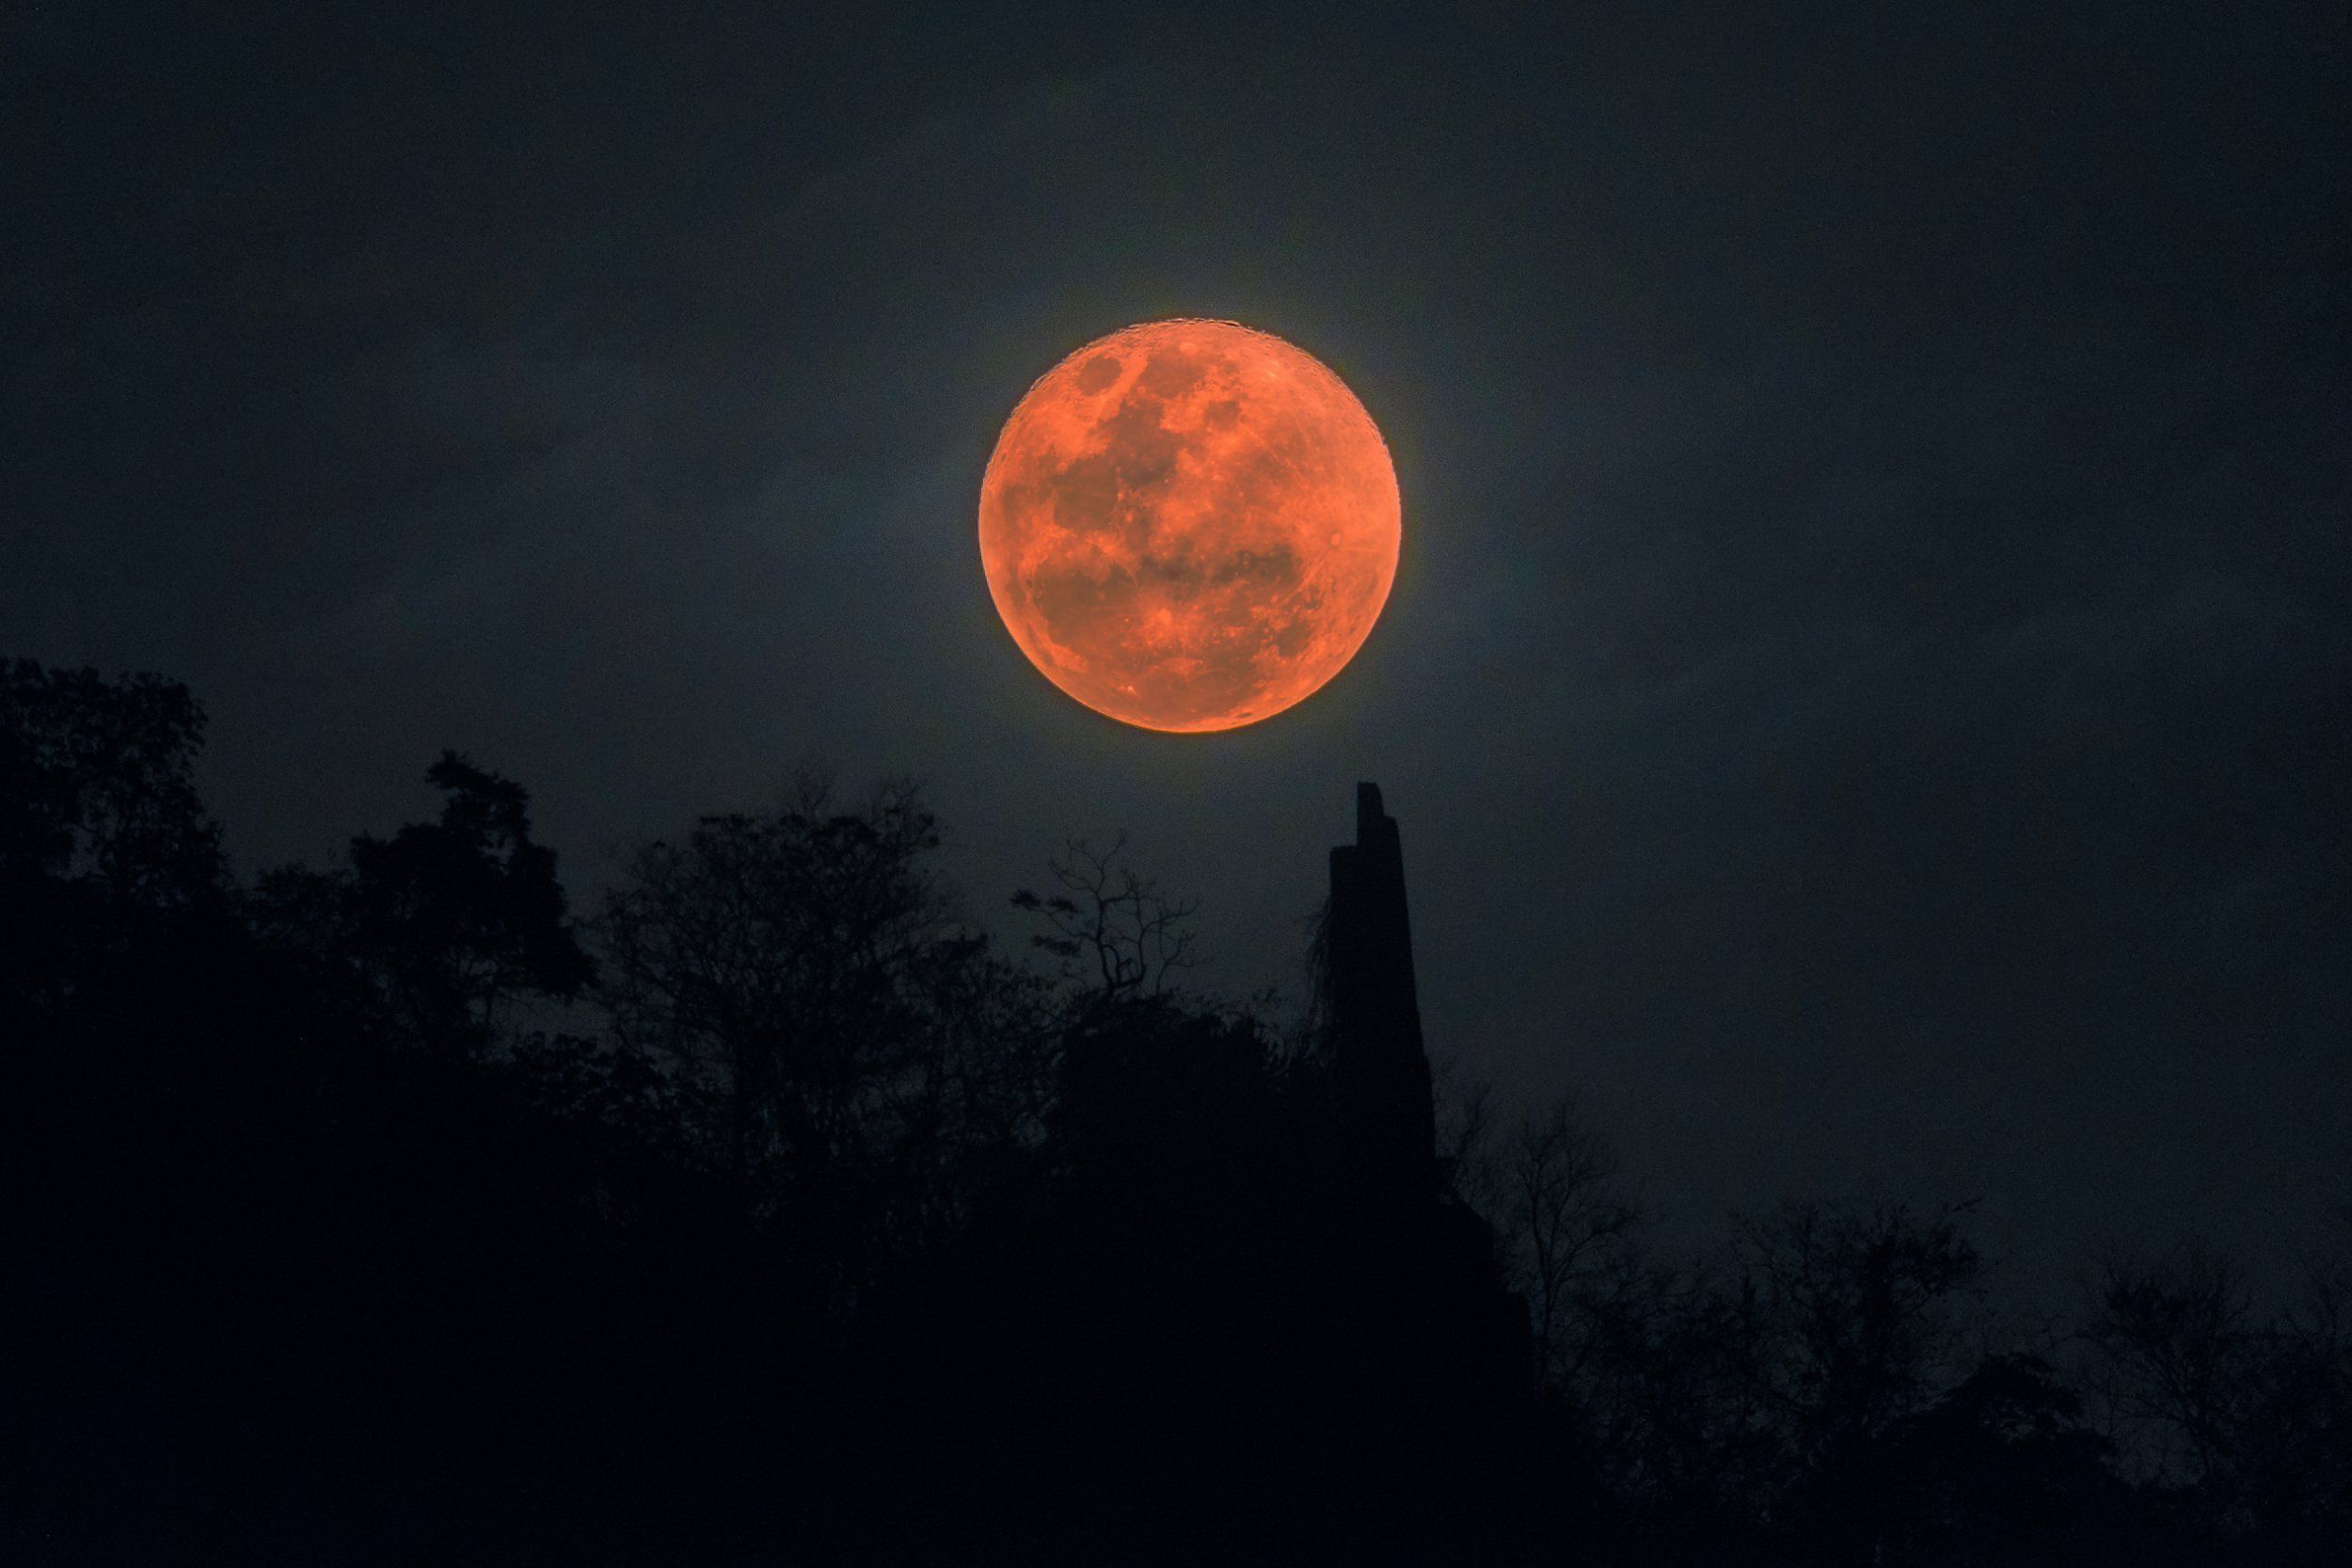 Why some people think January's Super Wolf Blood Moon means the world will end in 2019